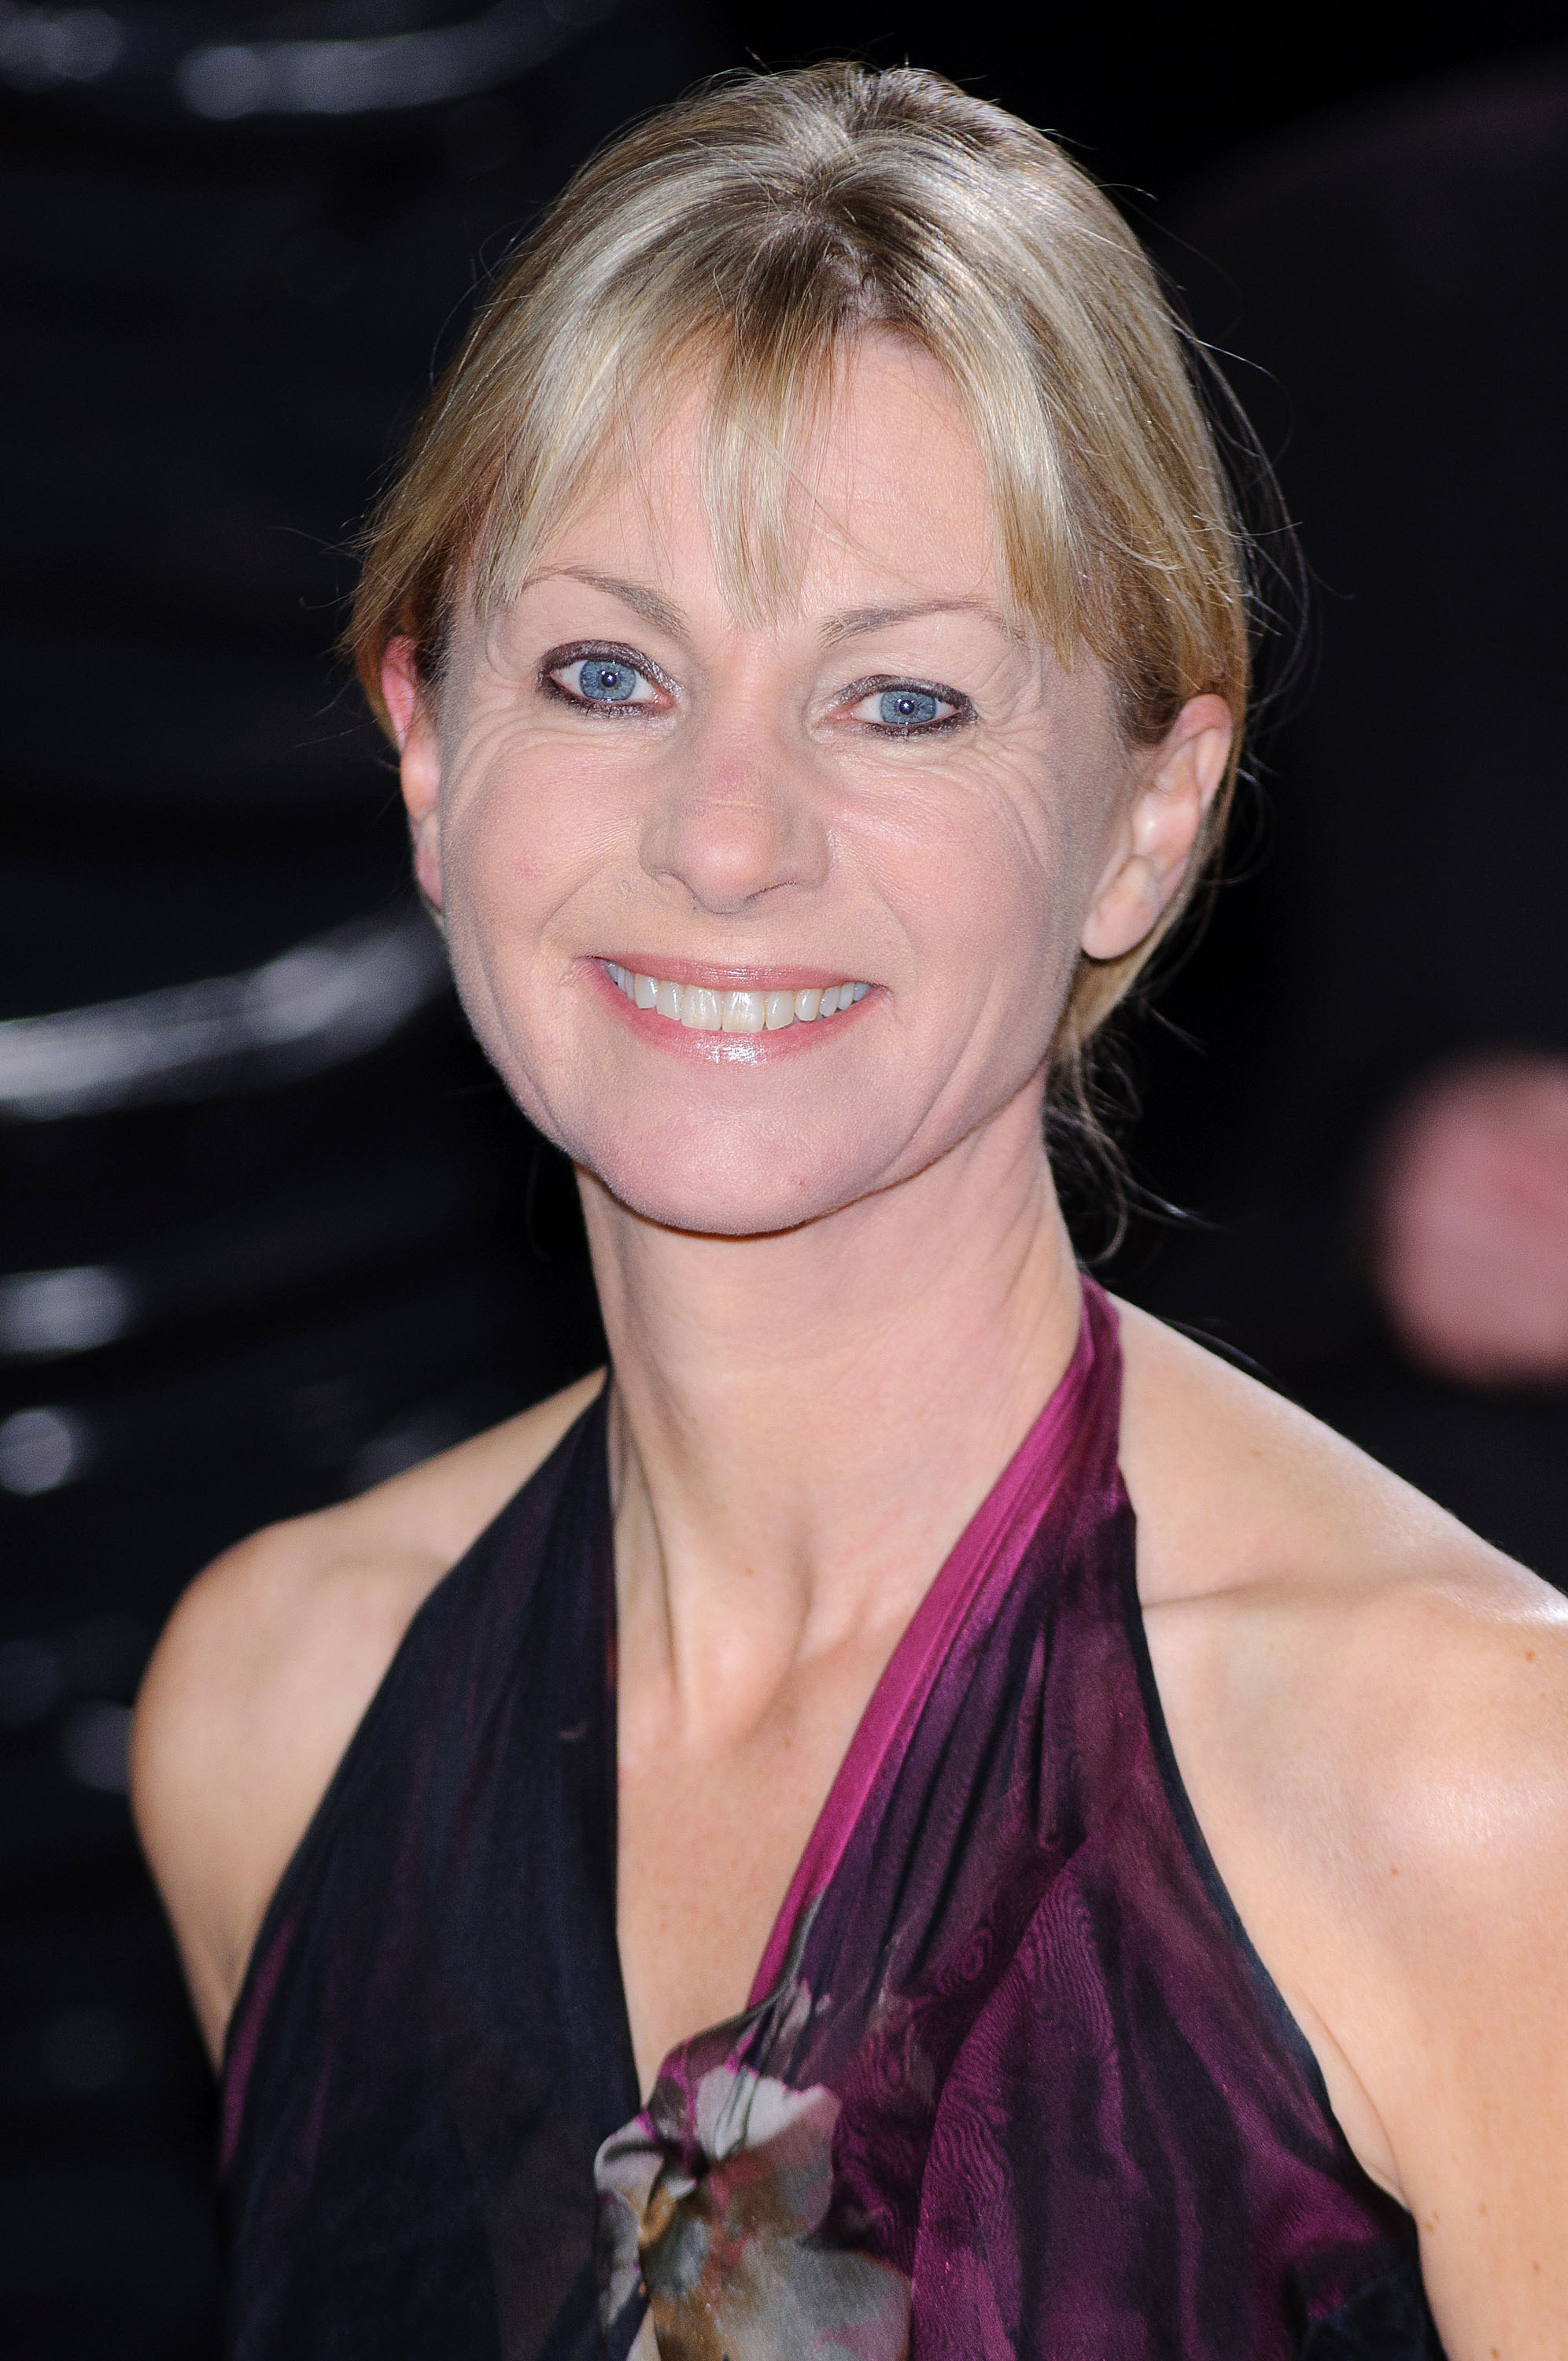 Kate mosse author